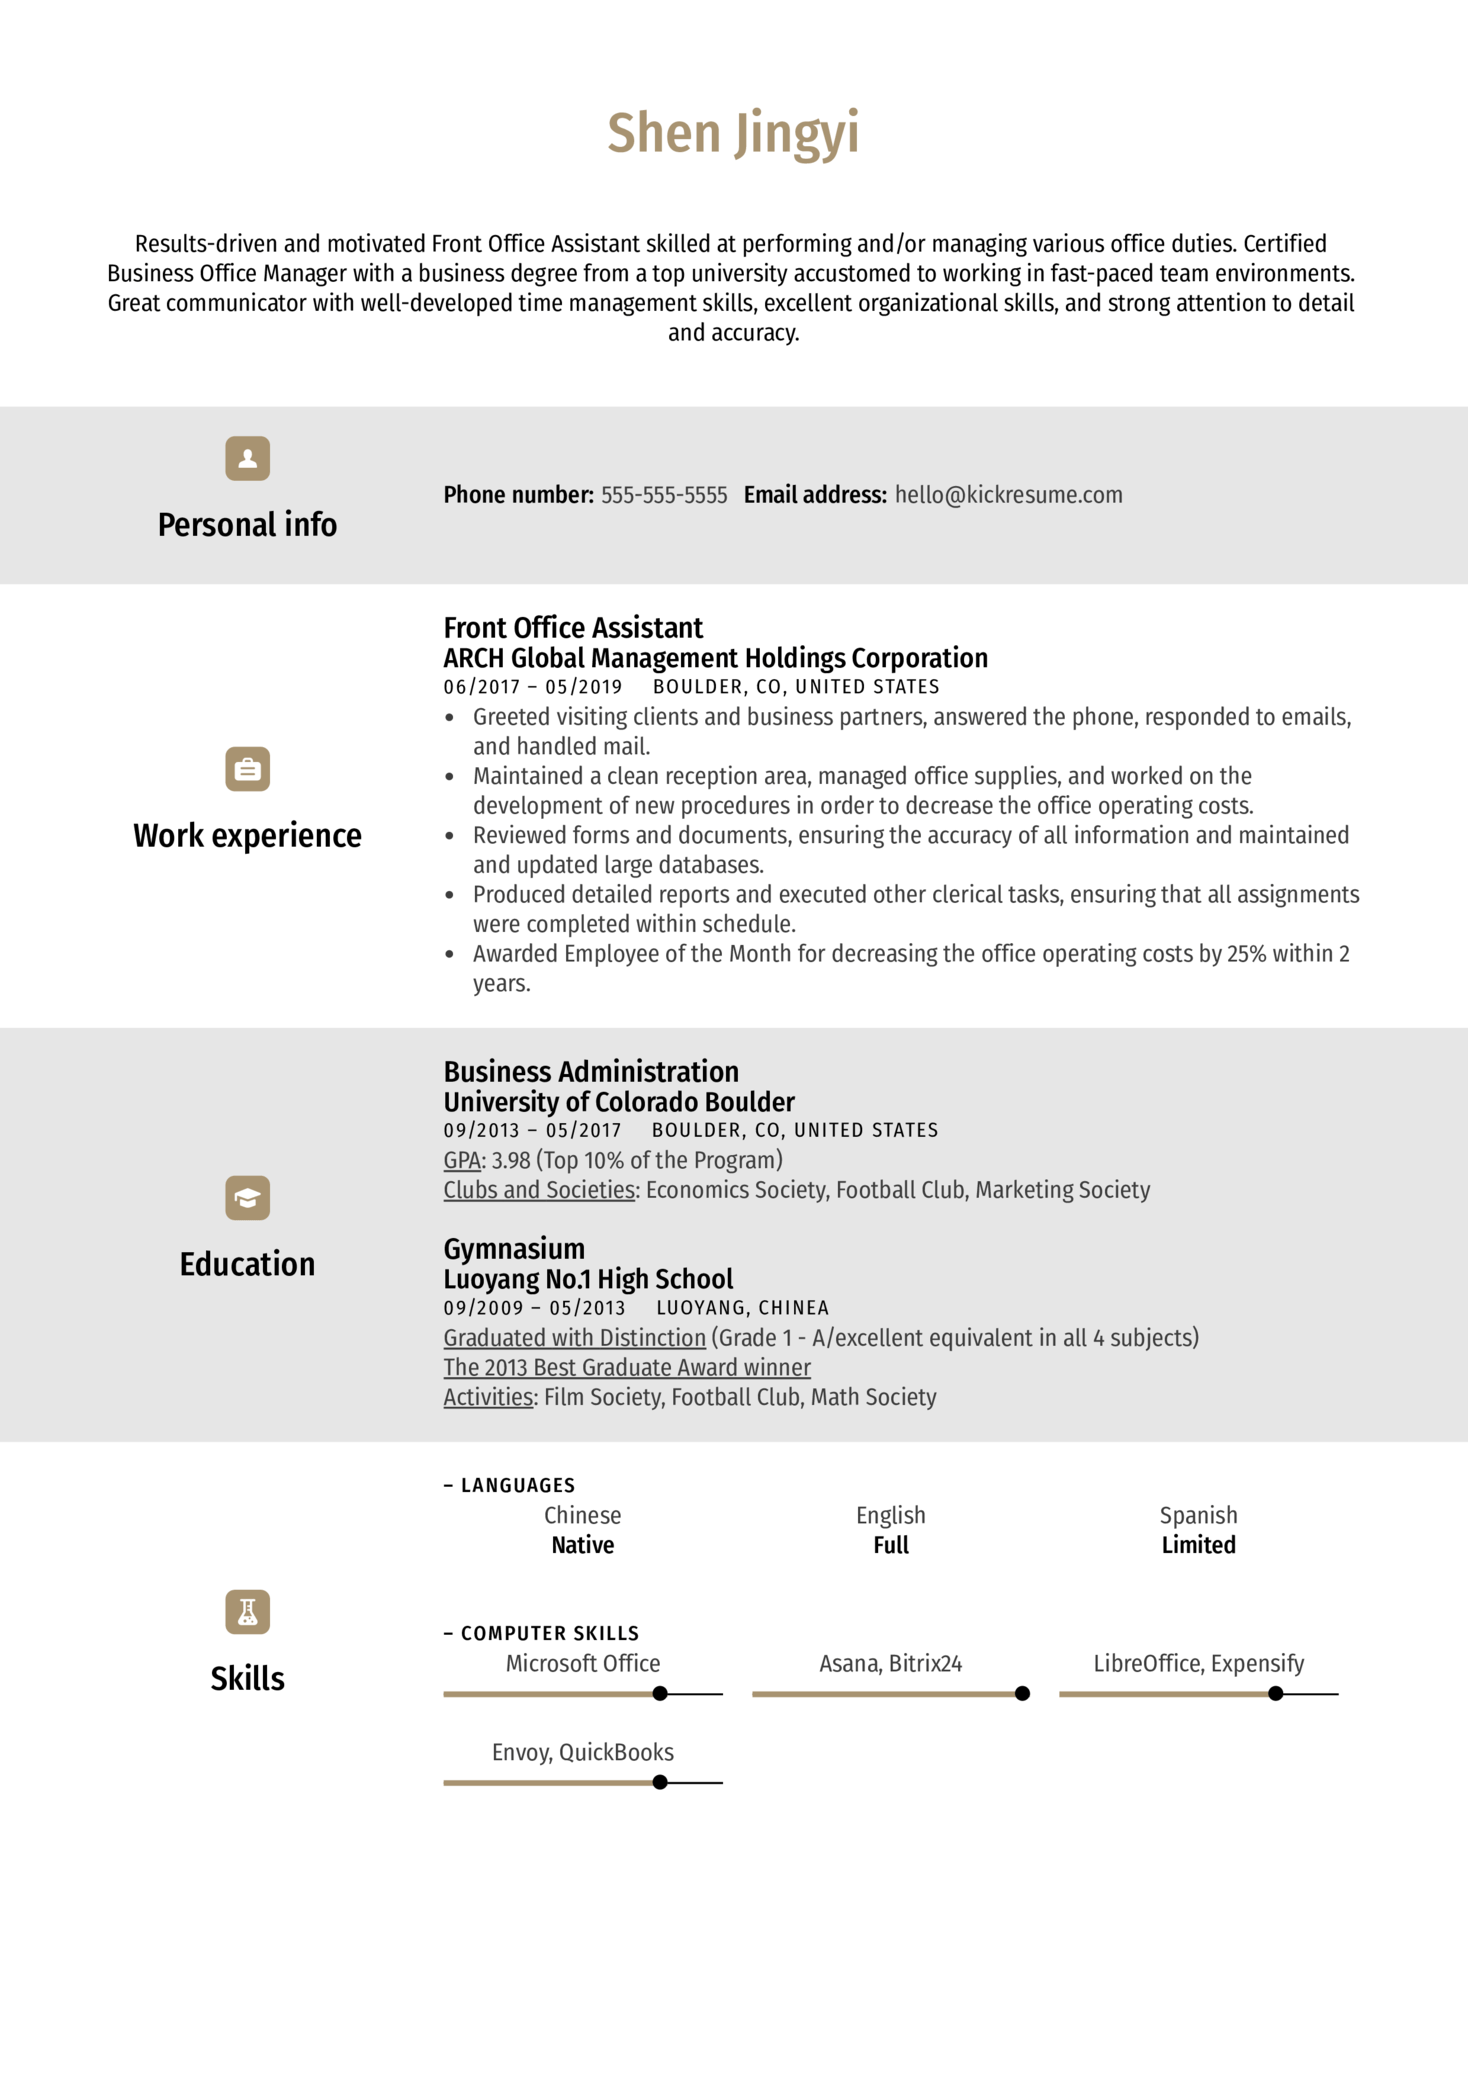 Front Office Assistant Resume Example (Part 1)